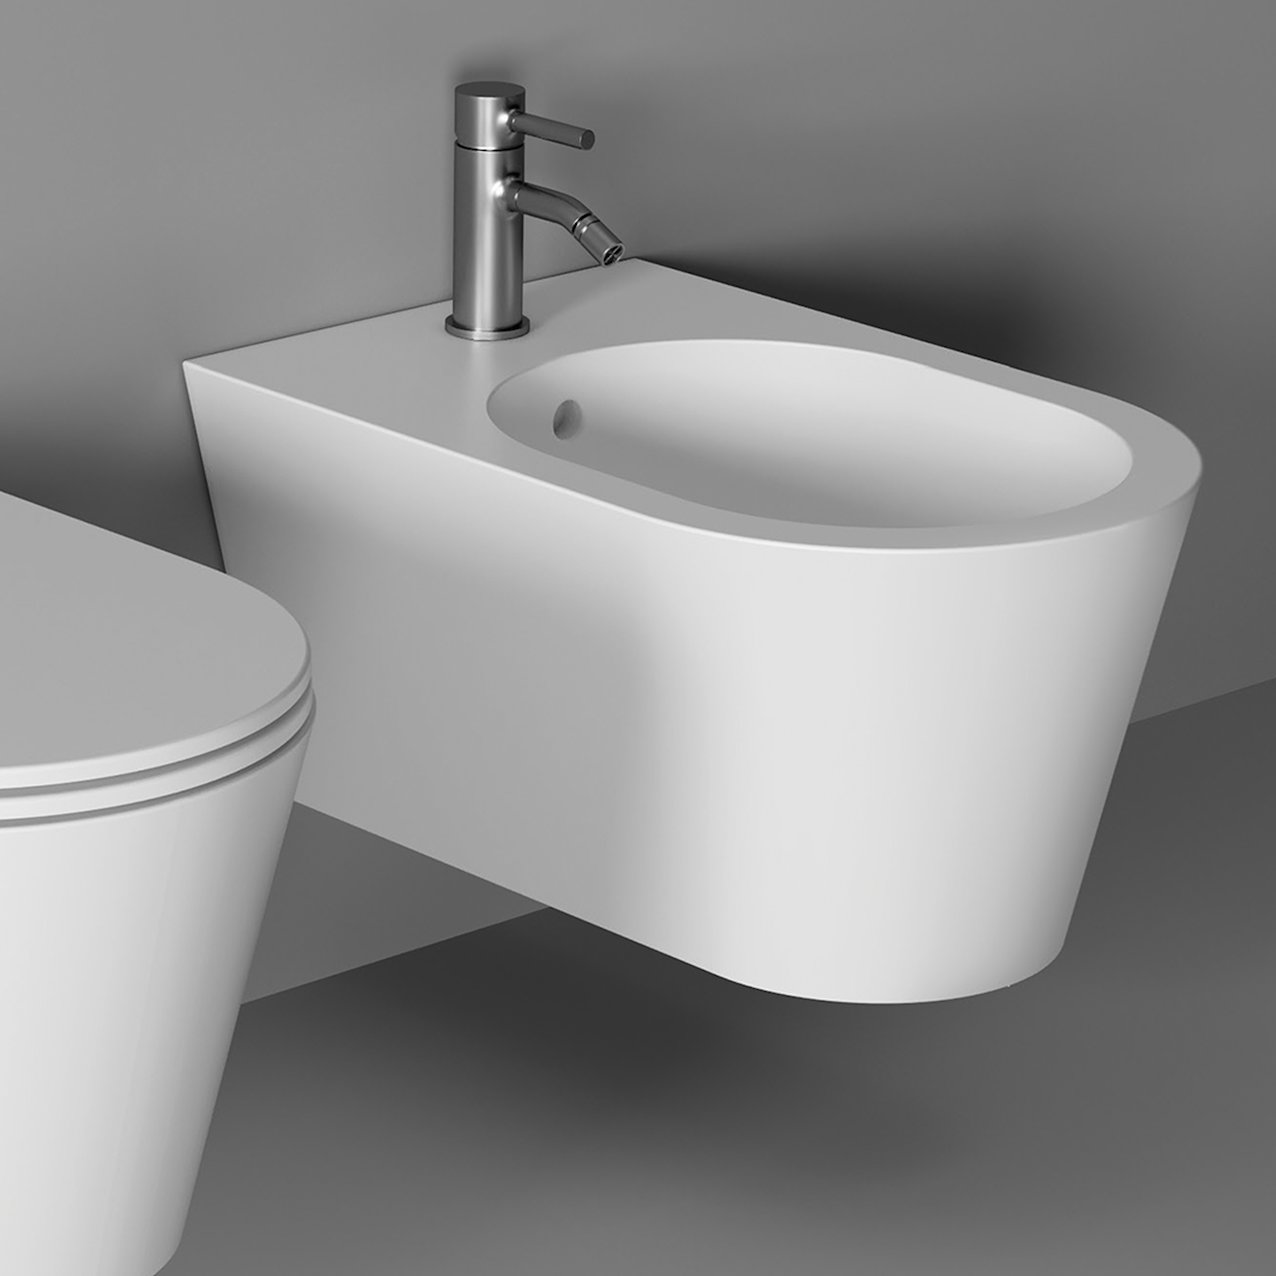 Bidet Hide Round wall hung